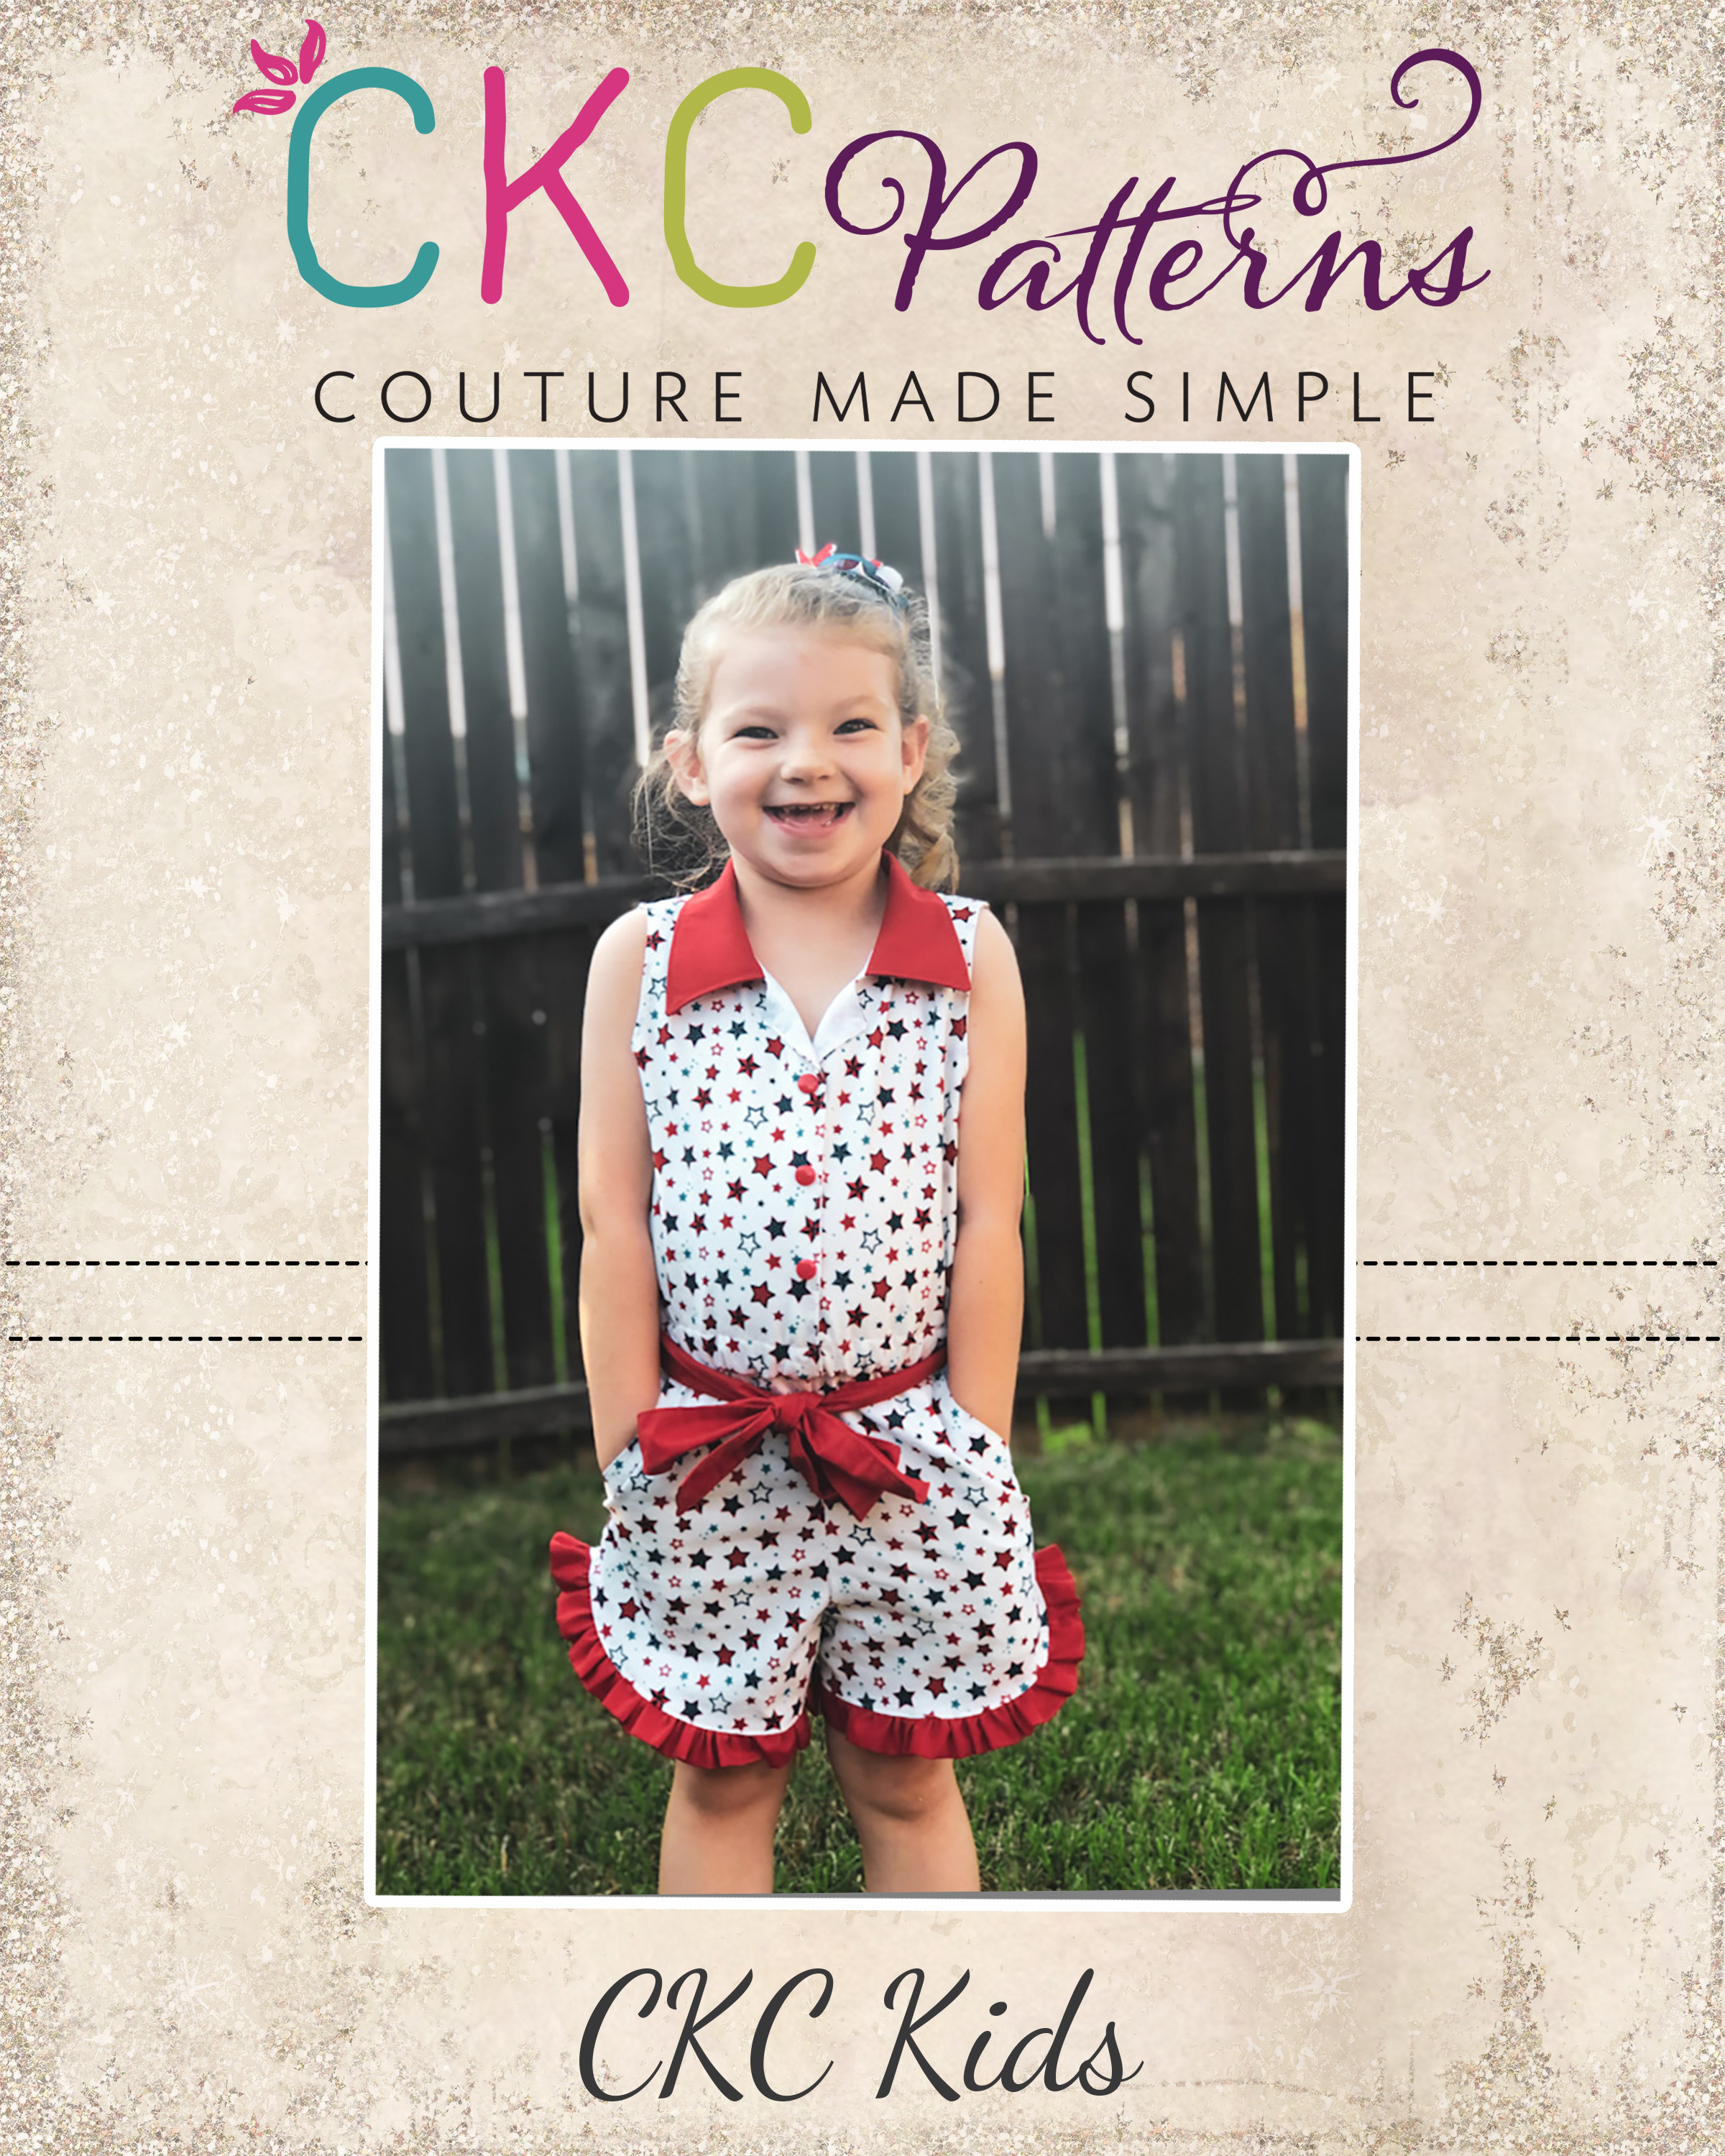 Skeeter's Buttonfront Romper Sizes 2T to 14 Kids PDF Pattern